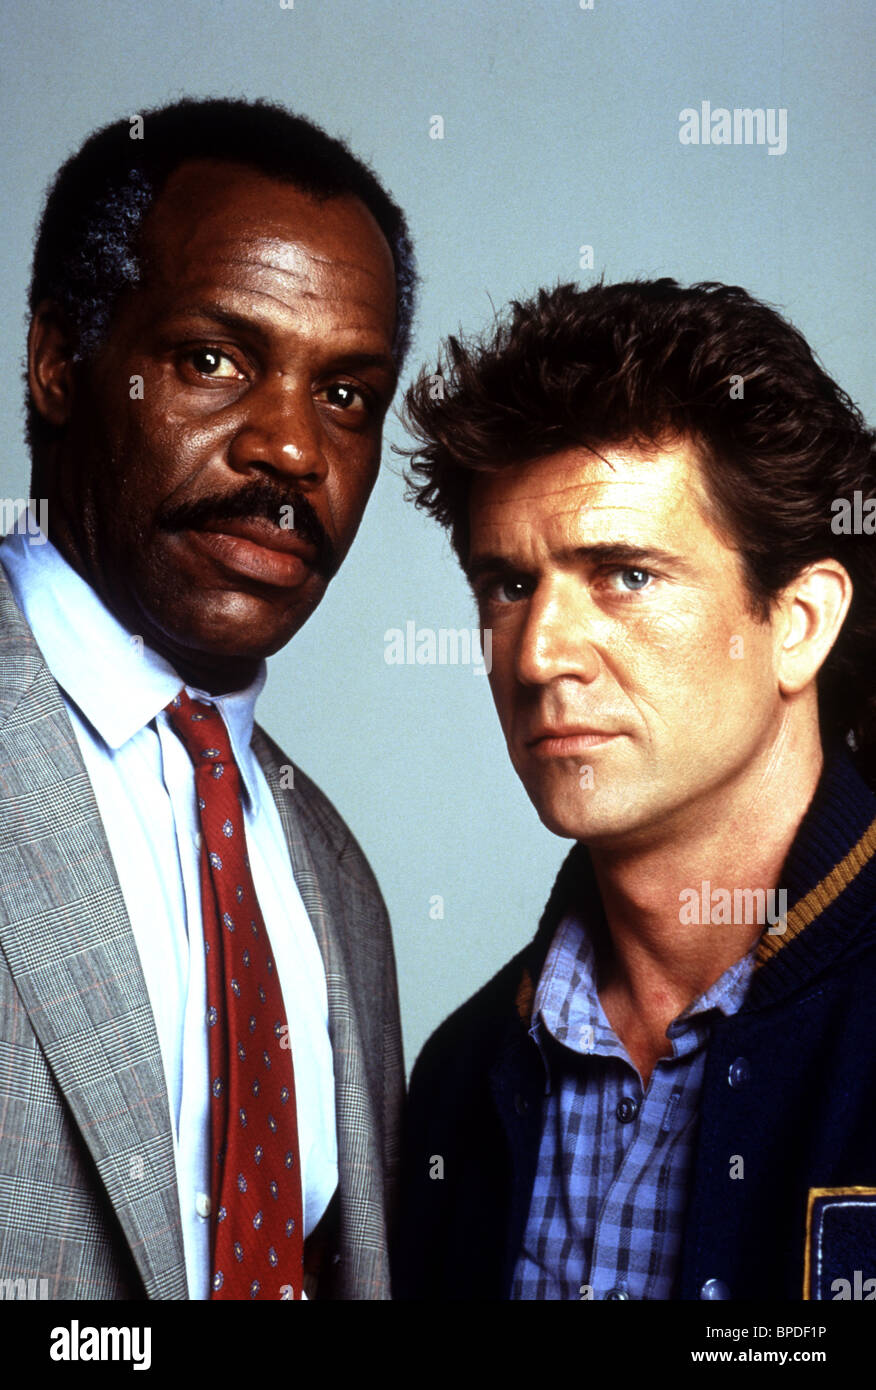 danny glover amp mel gibson lethal weapon 2 1989 stock